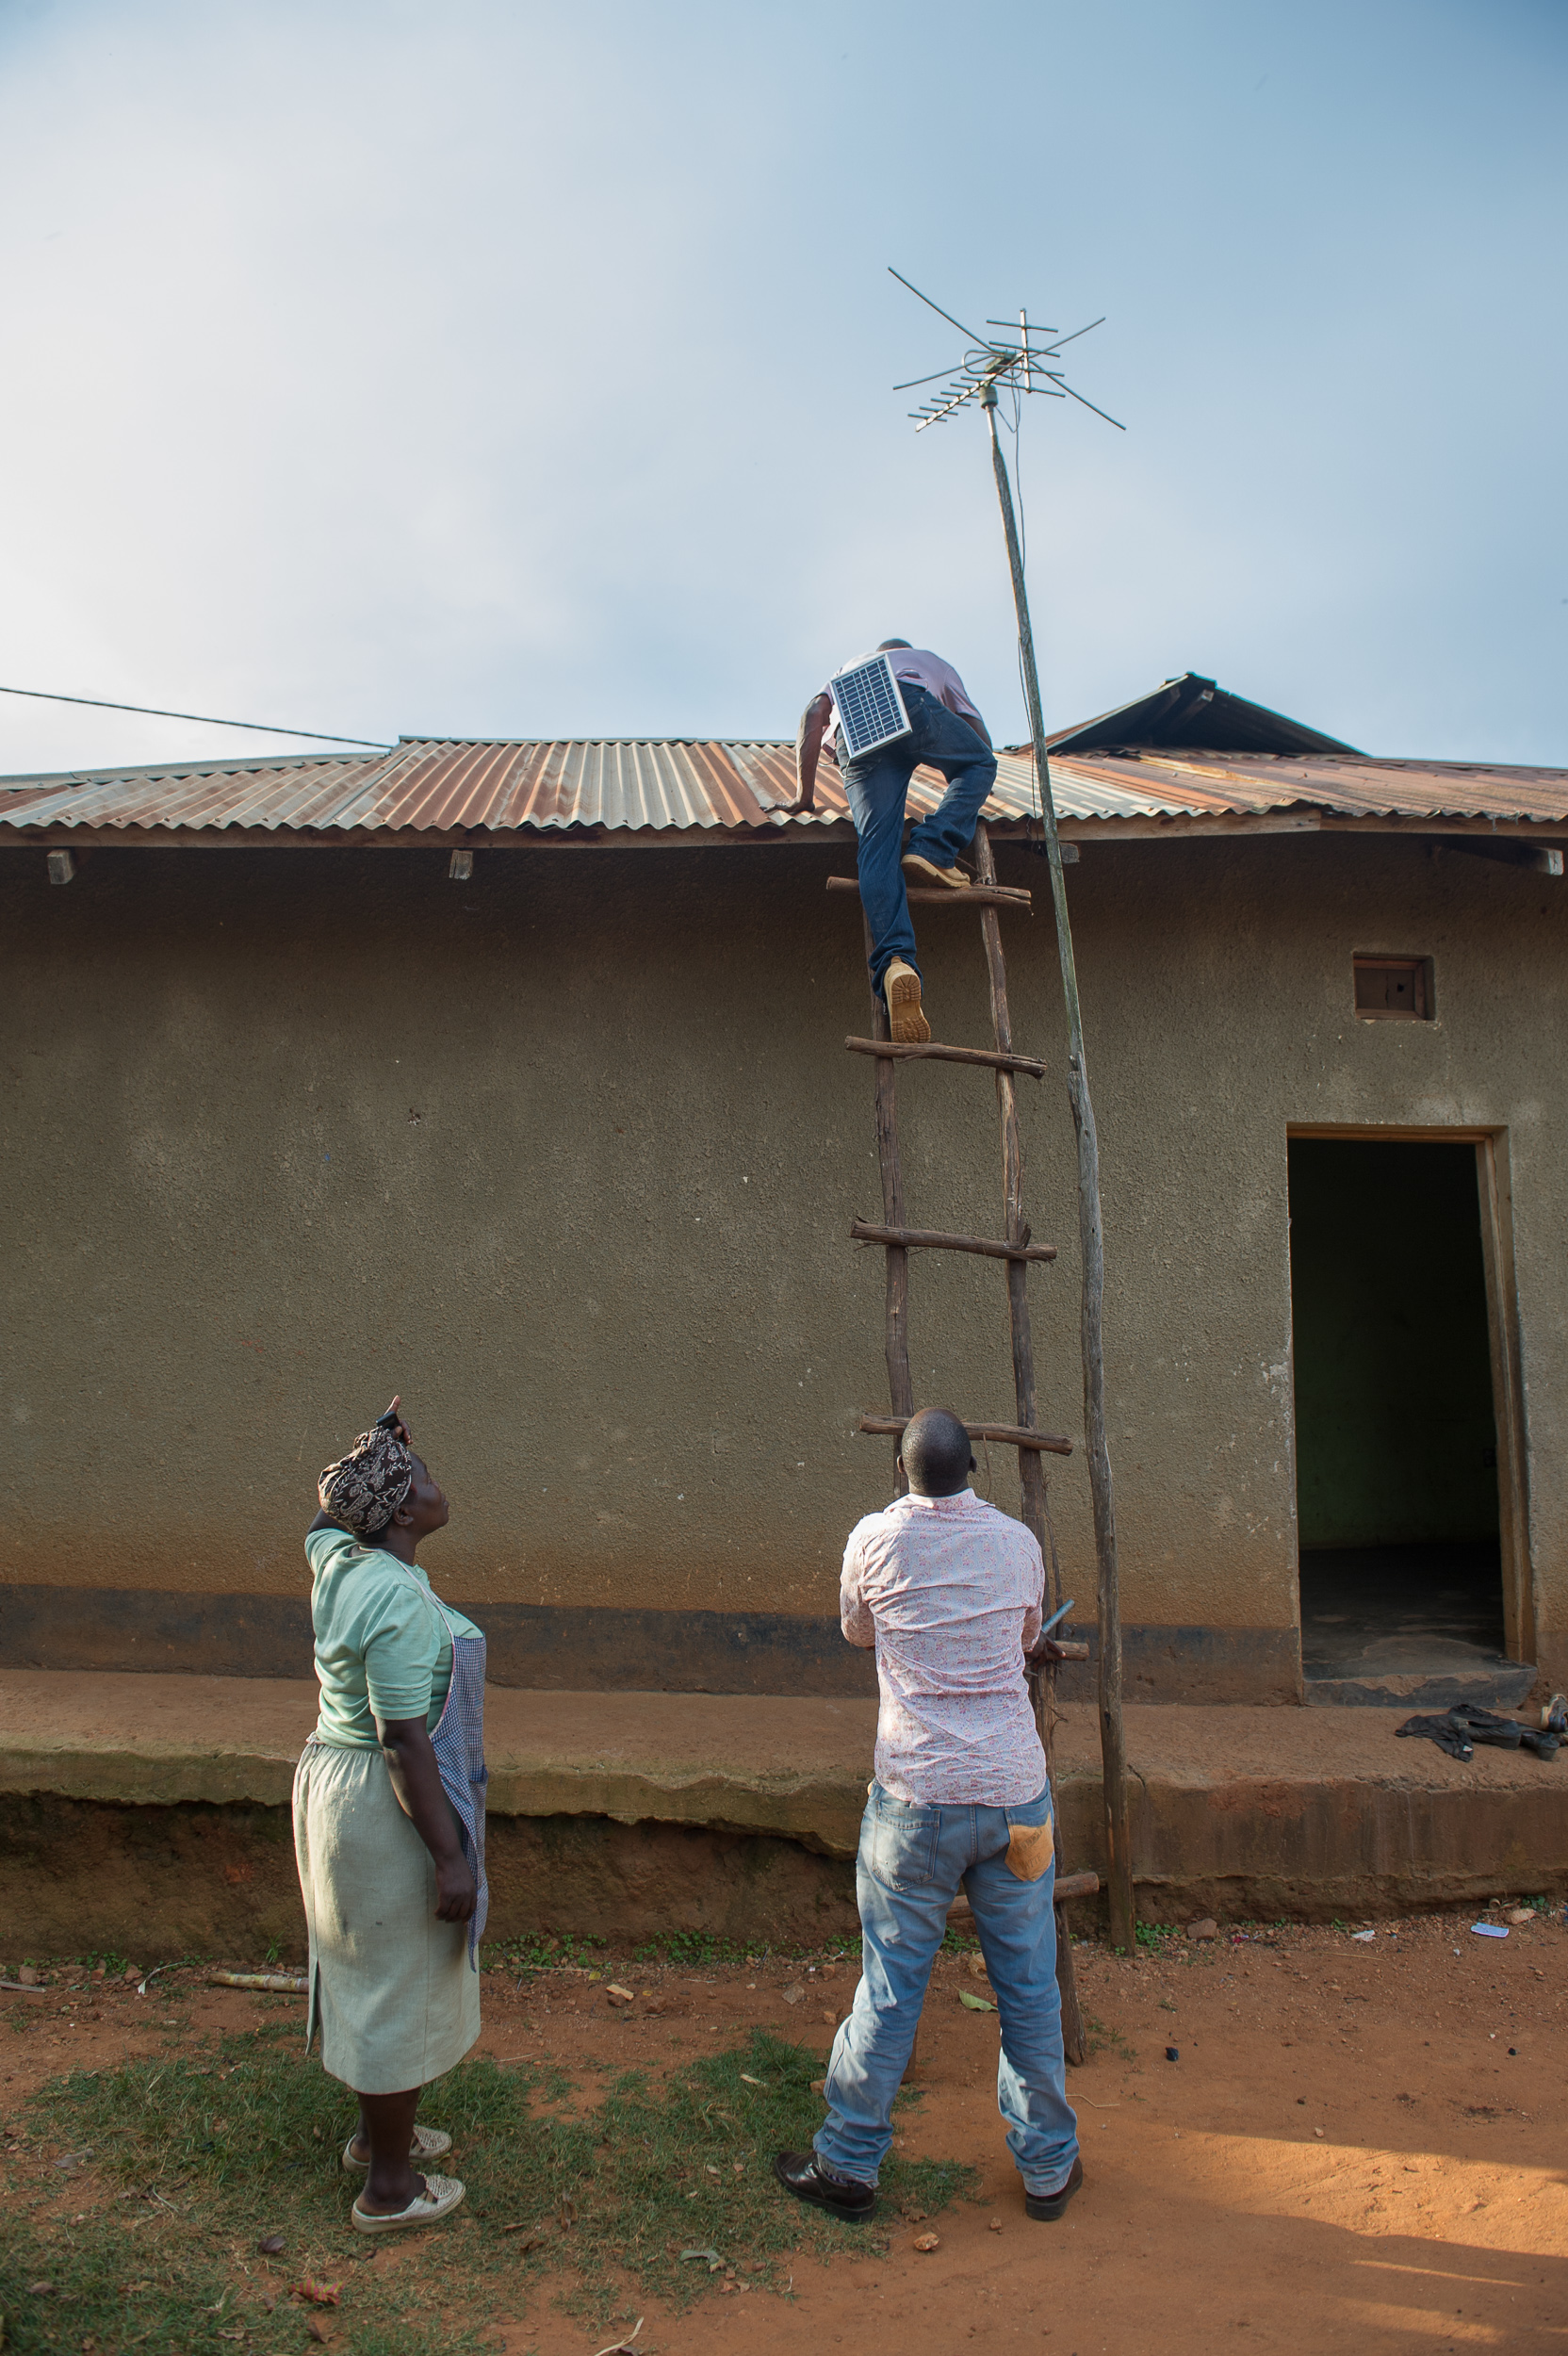 Josephine's house is connected to the grid but the electricity goes out routinely.She's adding a solar panel on the roof to help reduce her bills and keep the lights on even when the main power is out.